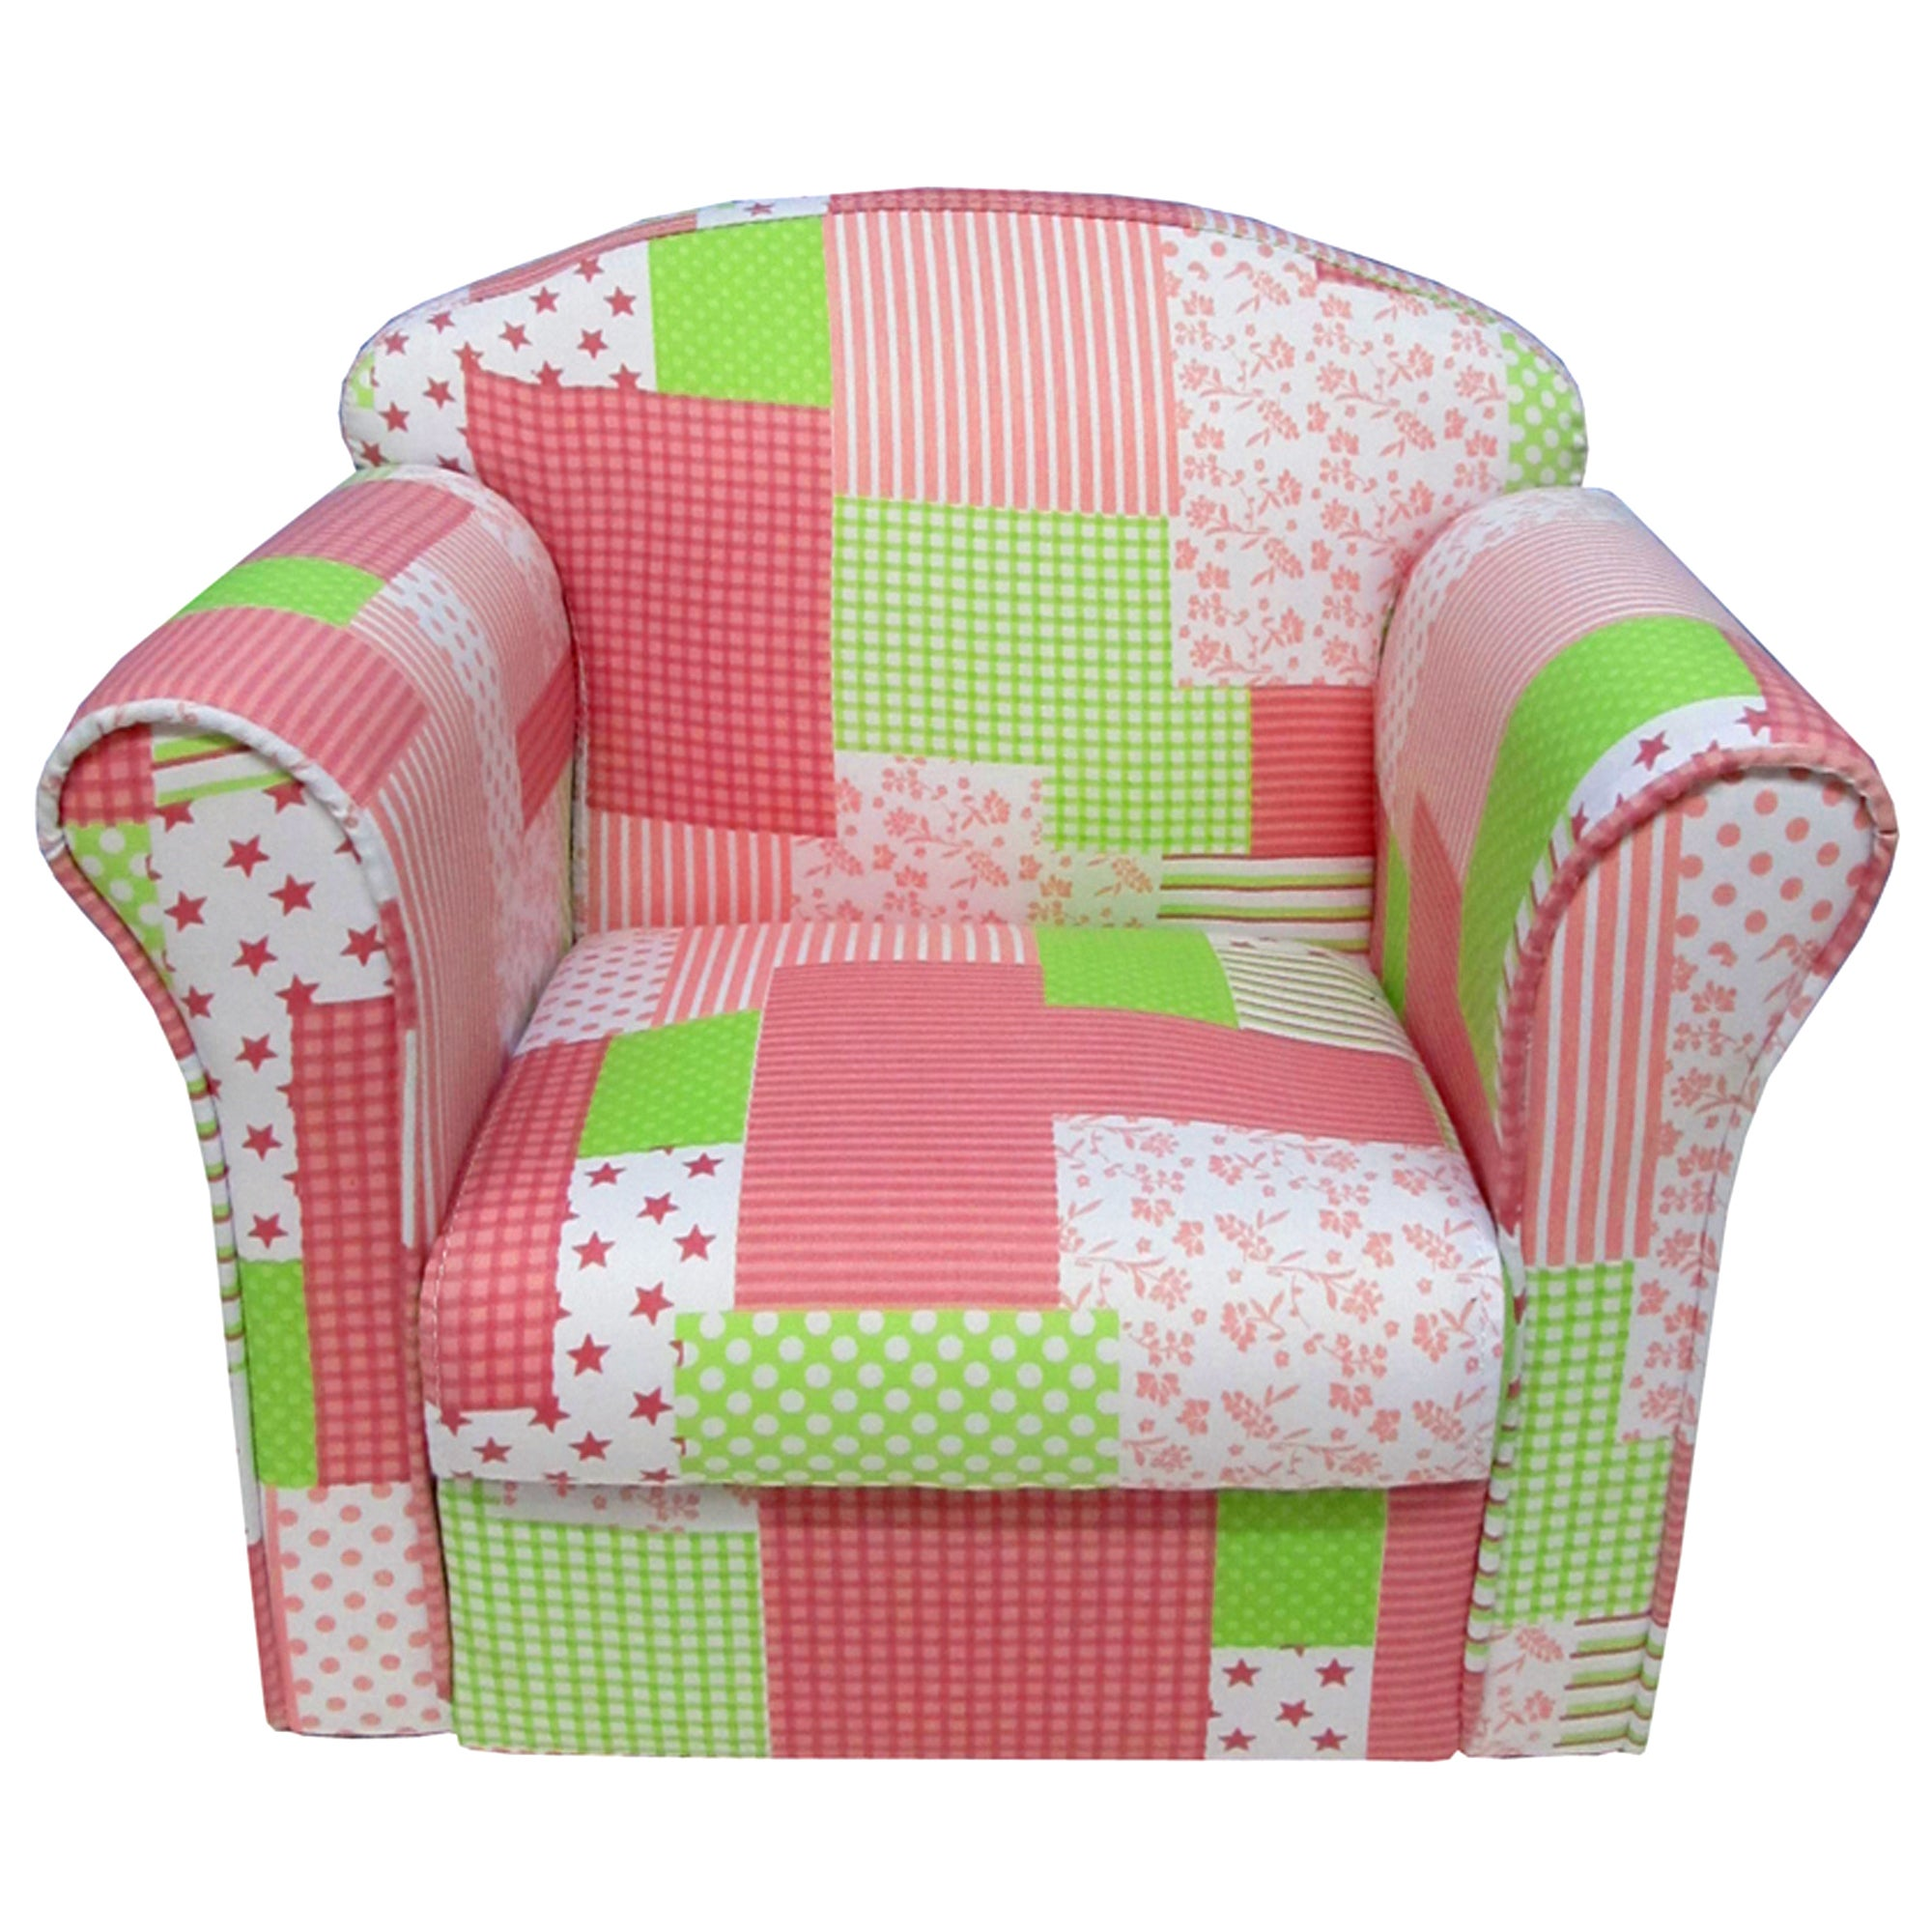 Kids Patchwork Armchair